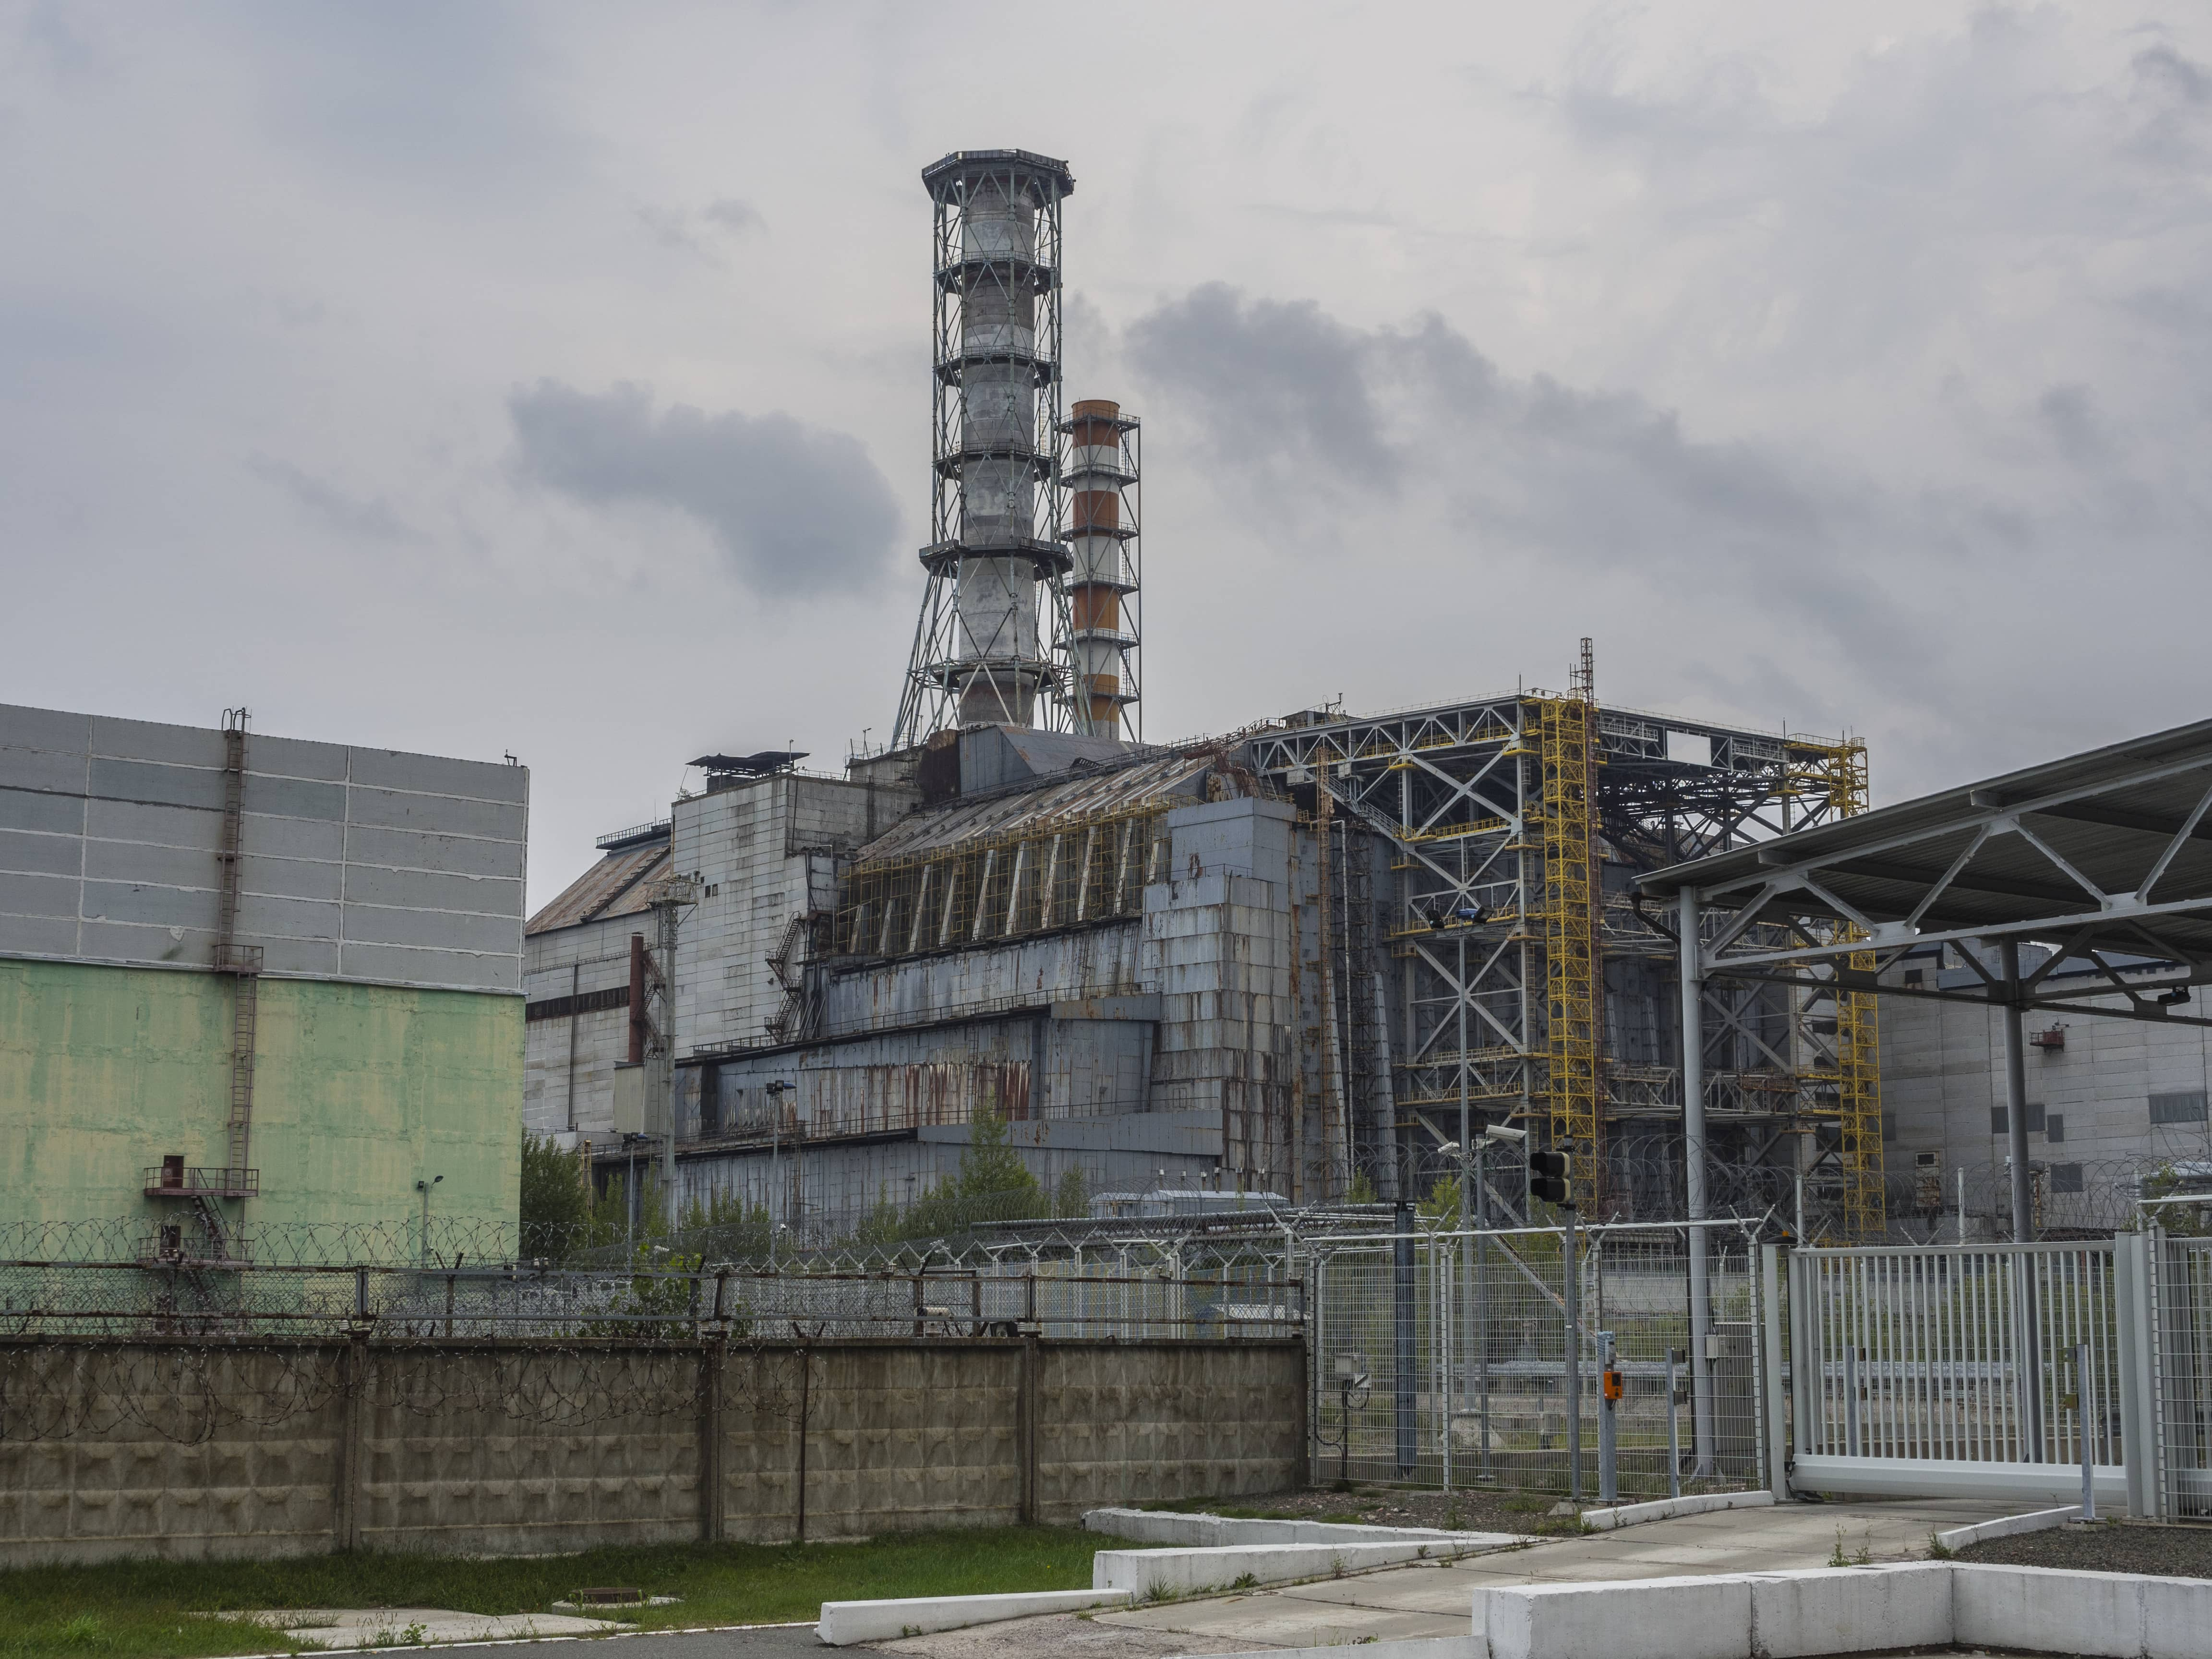 Chernobyl, Site Of Nuclear Disaster, To Get Solar Power